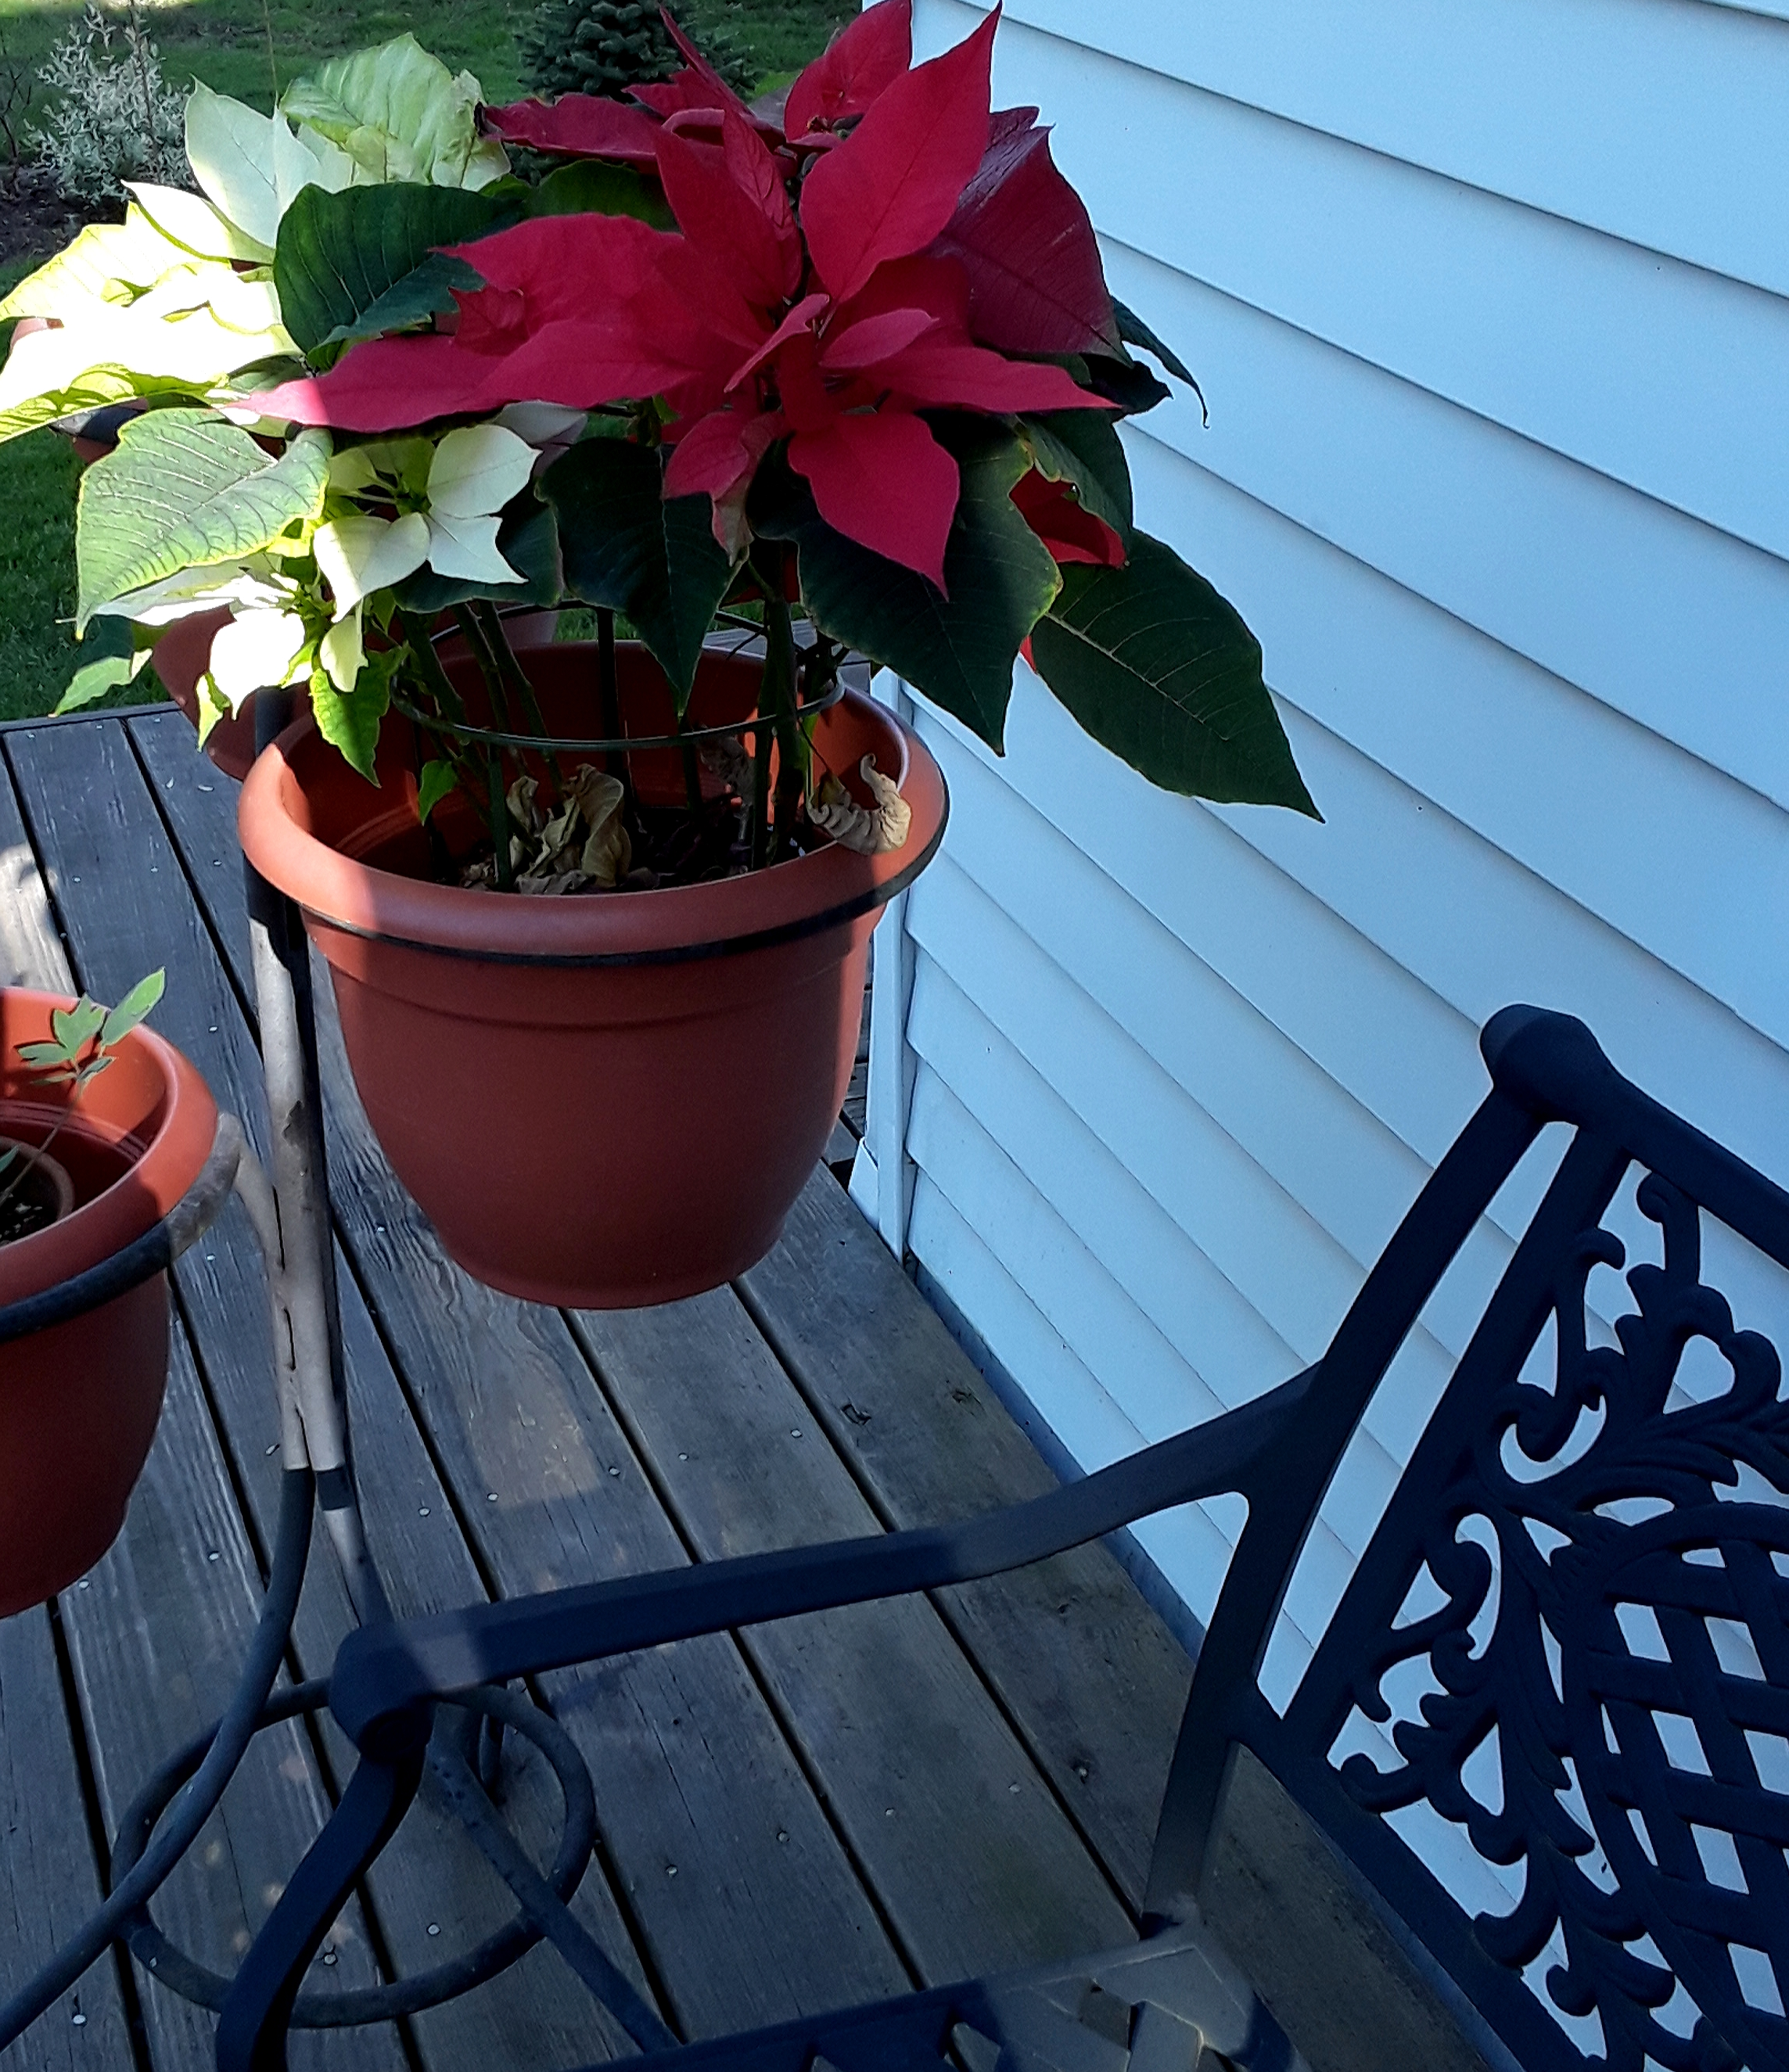 Red and white poinsettia bloom outdoors in May.